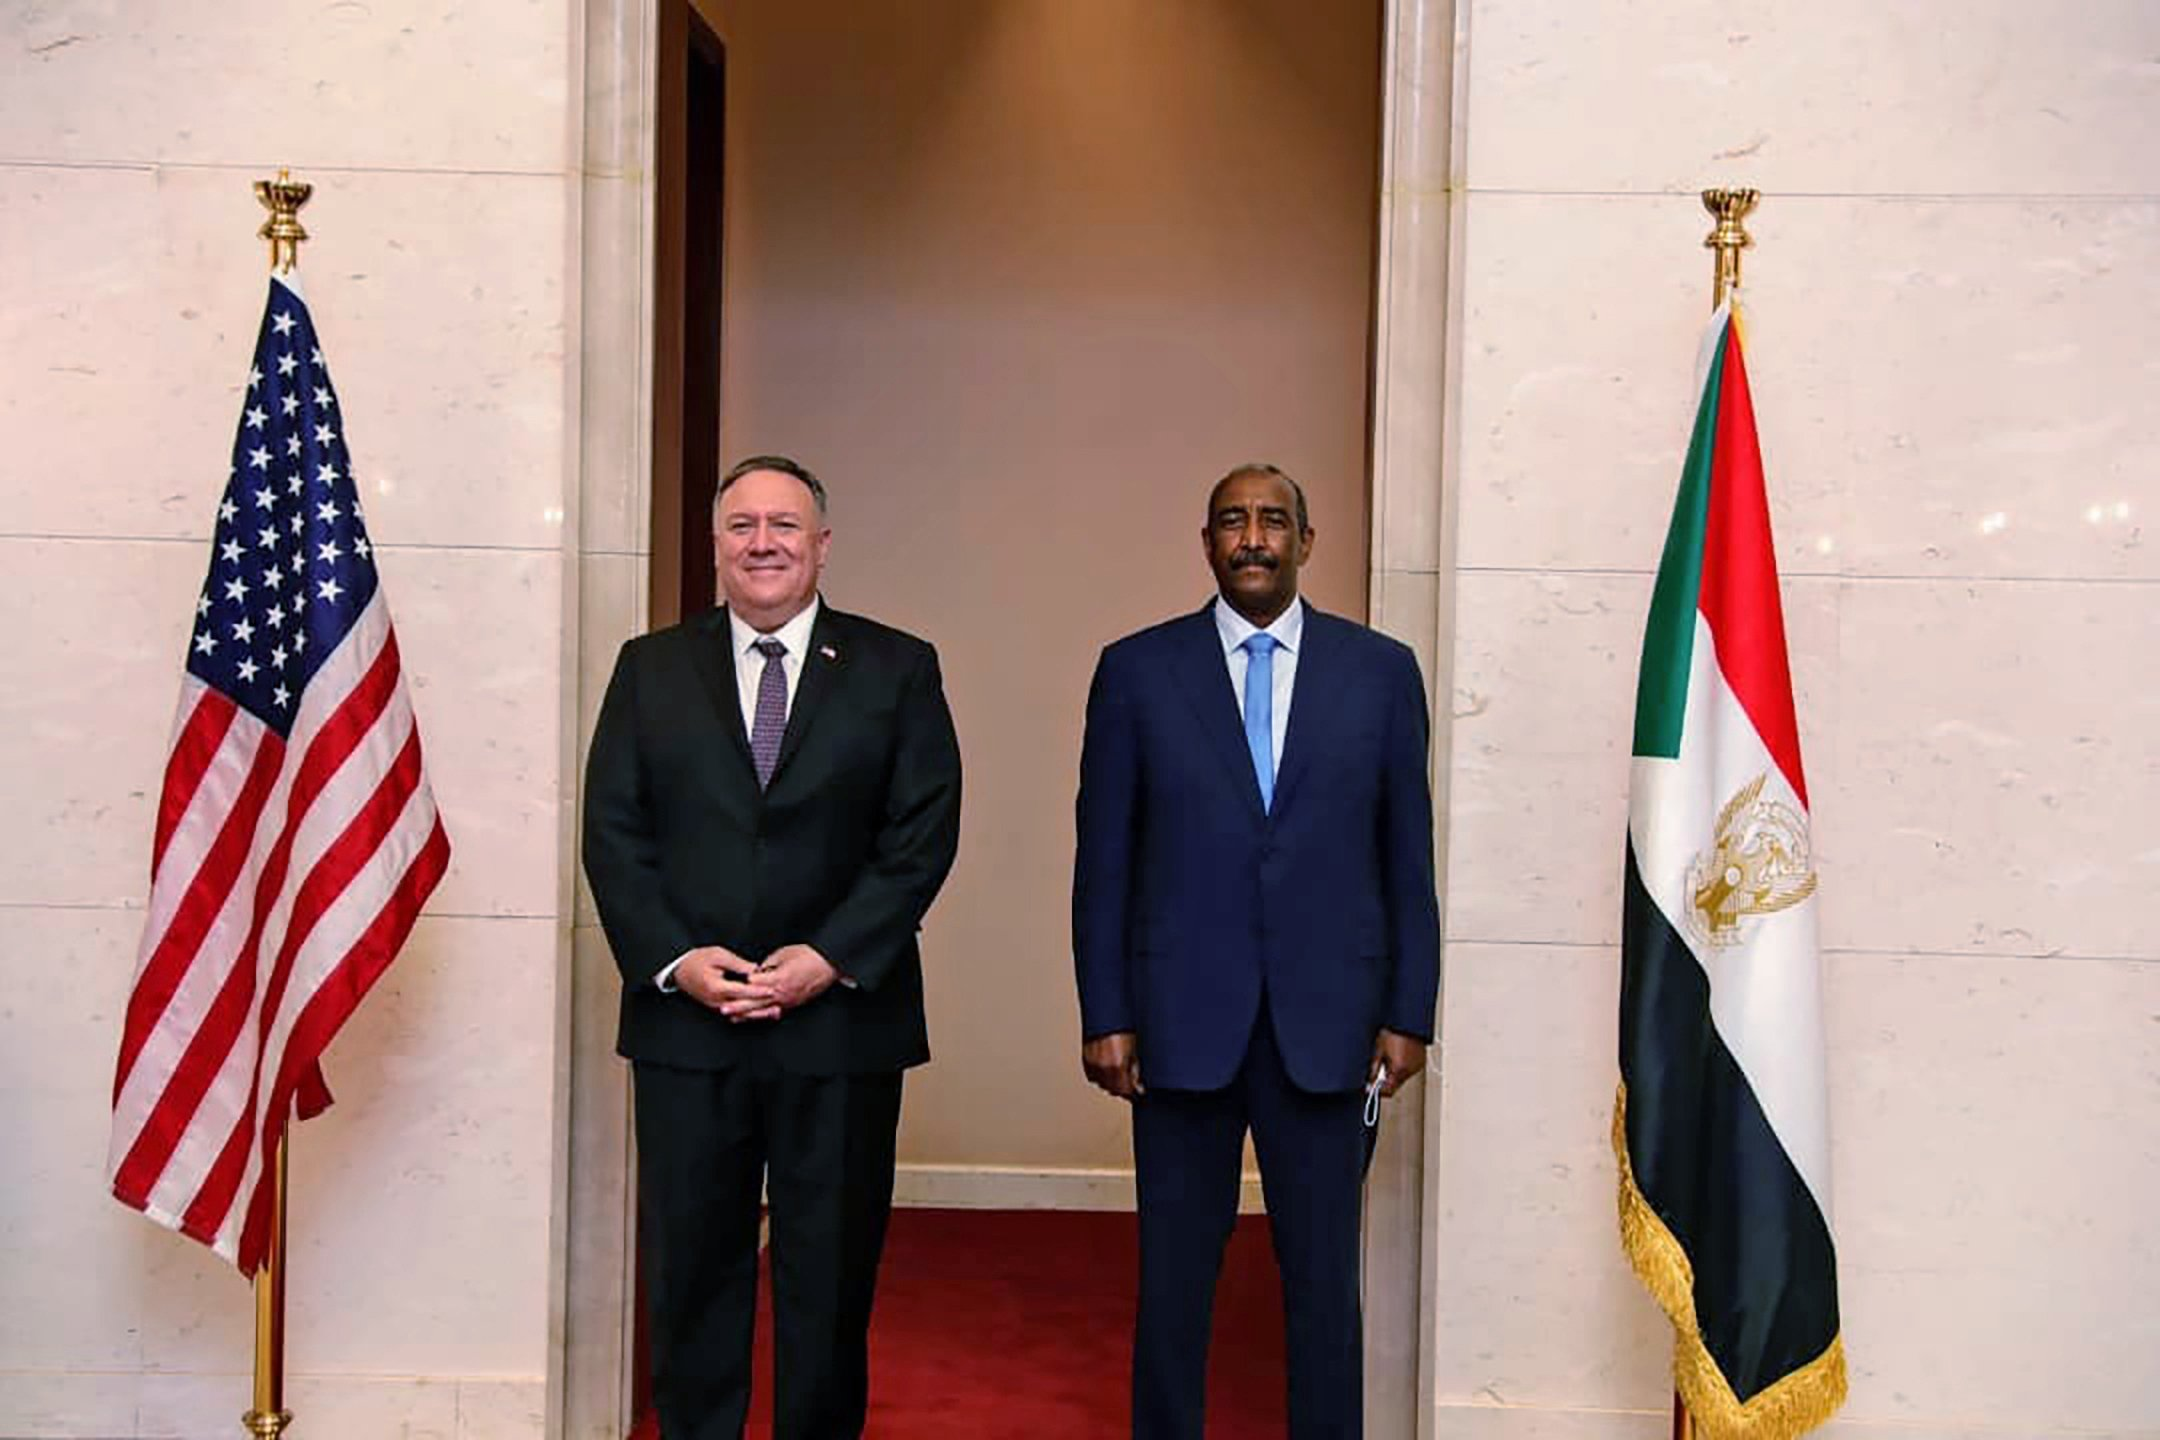 Trump says Sudan to be removed from terrorism list